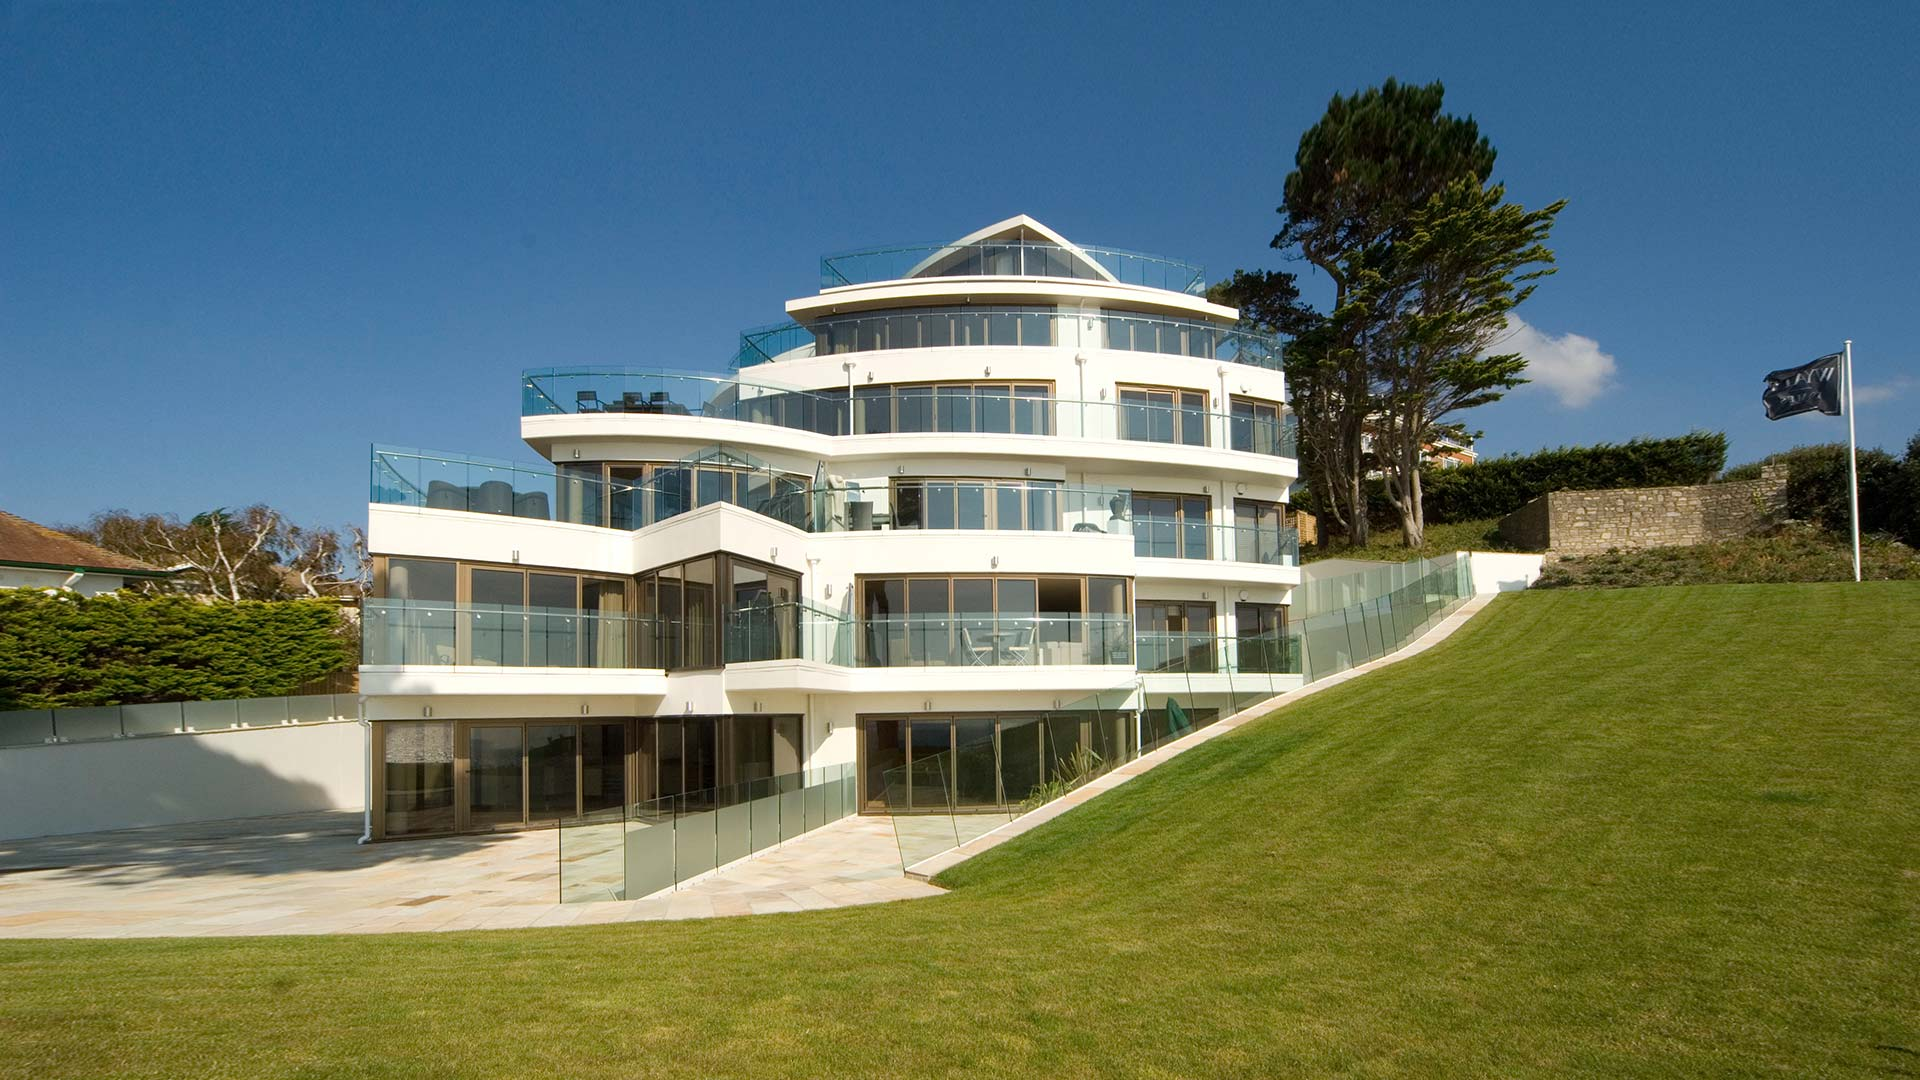 Vision unique apartment architecture sandbanks poole - Architects poole dorset ...